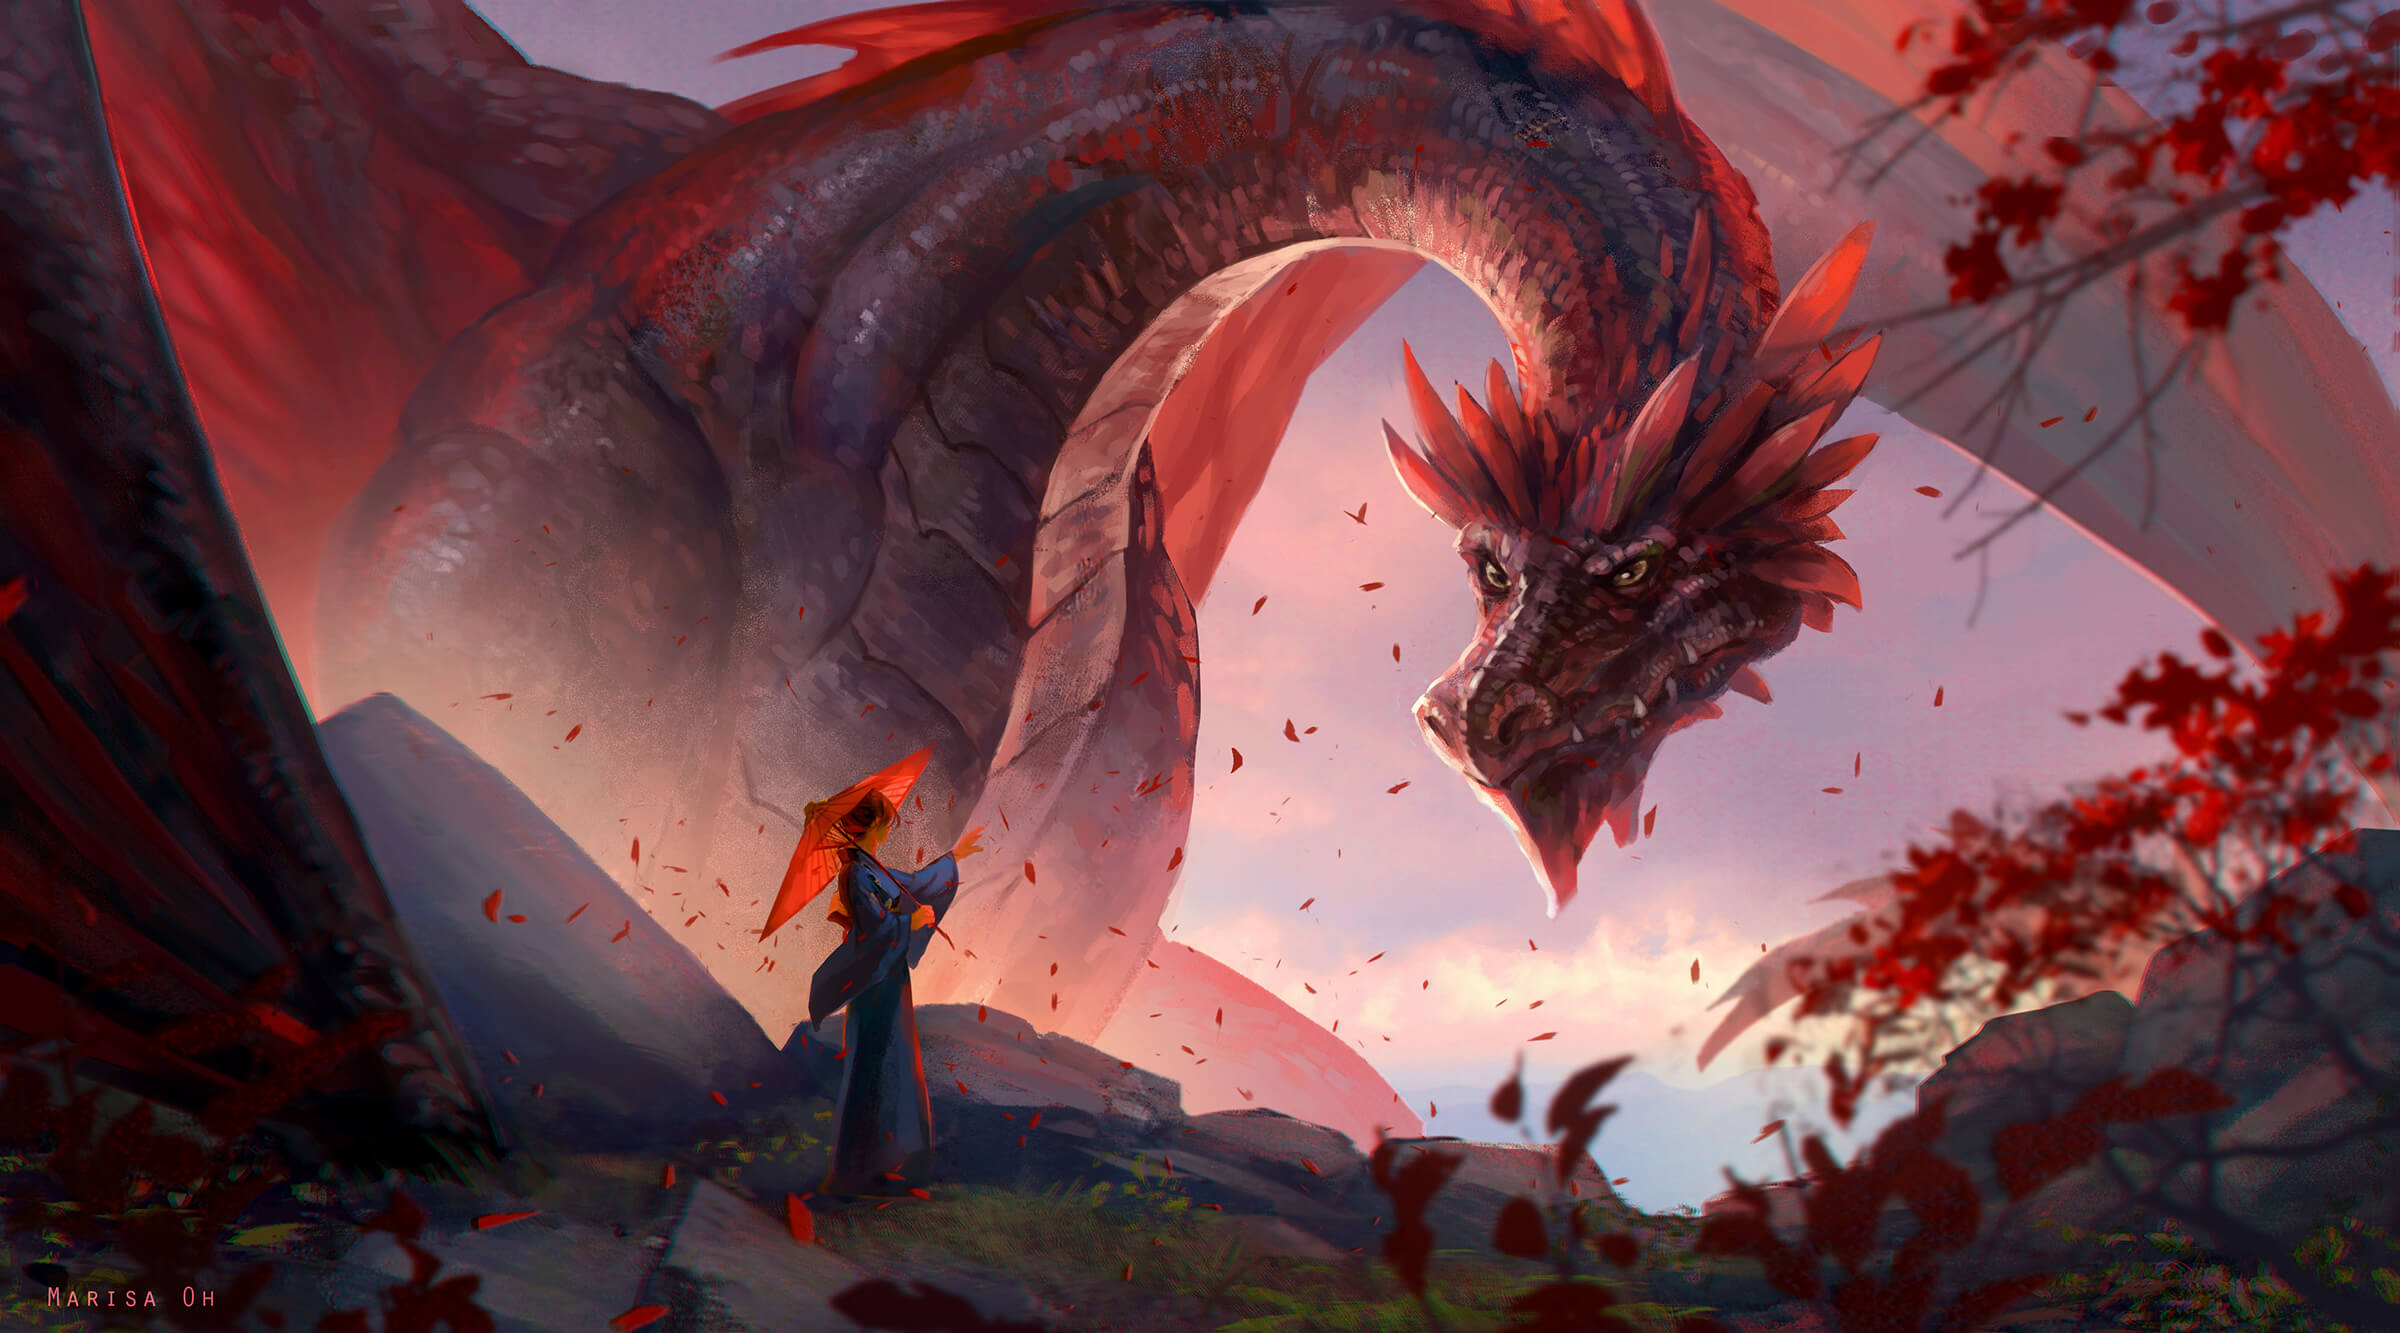 A woman holding a red paper umbrella greets a hulking red dragon at rest, its head craning to glower at her.